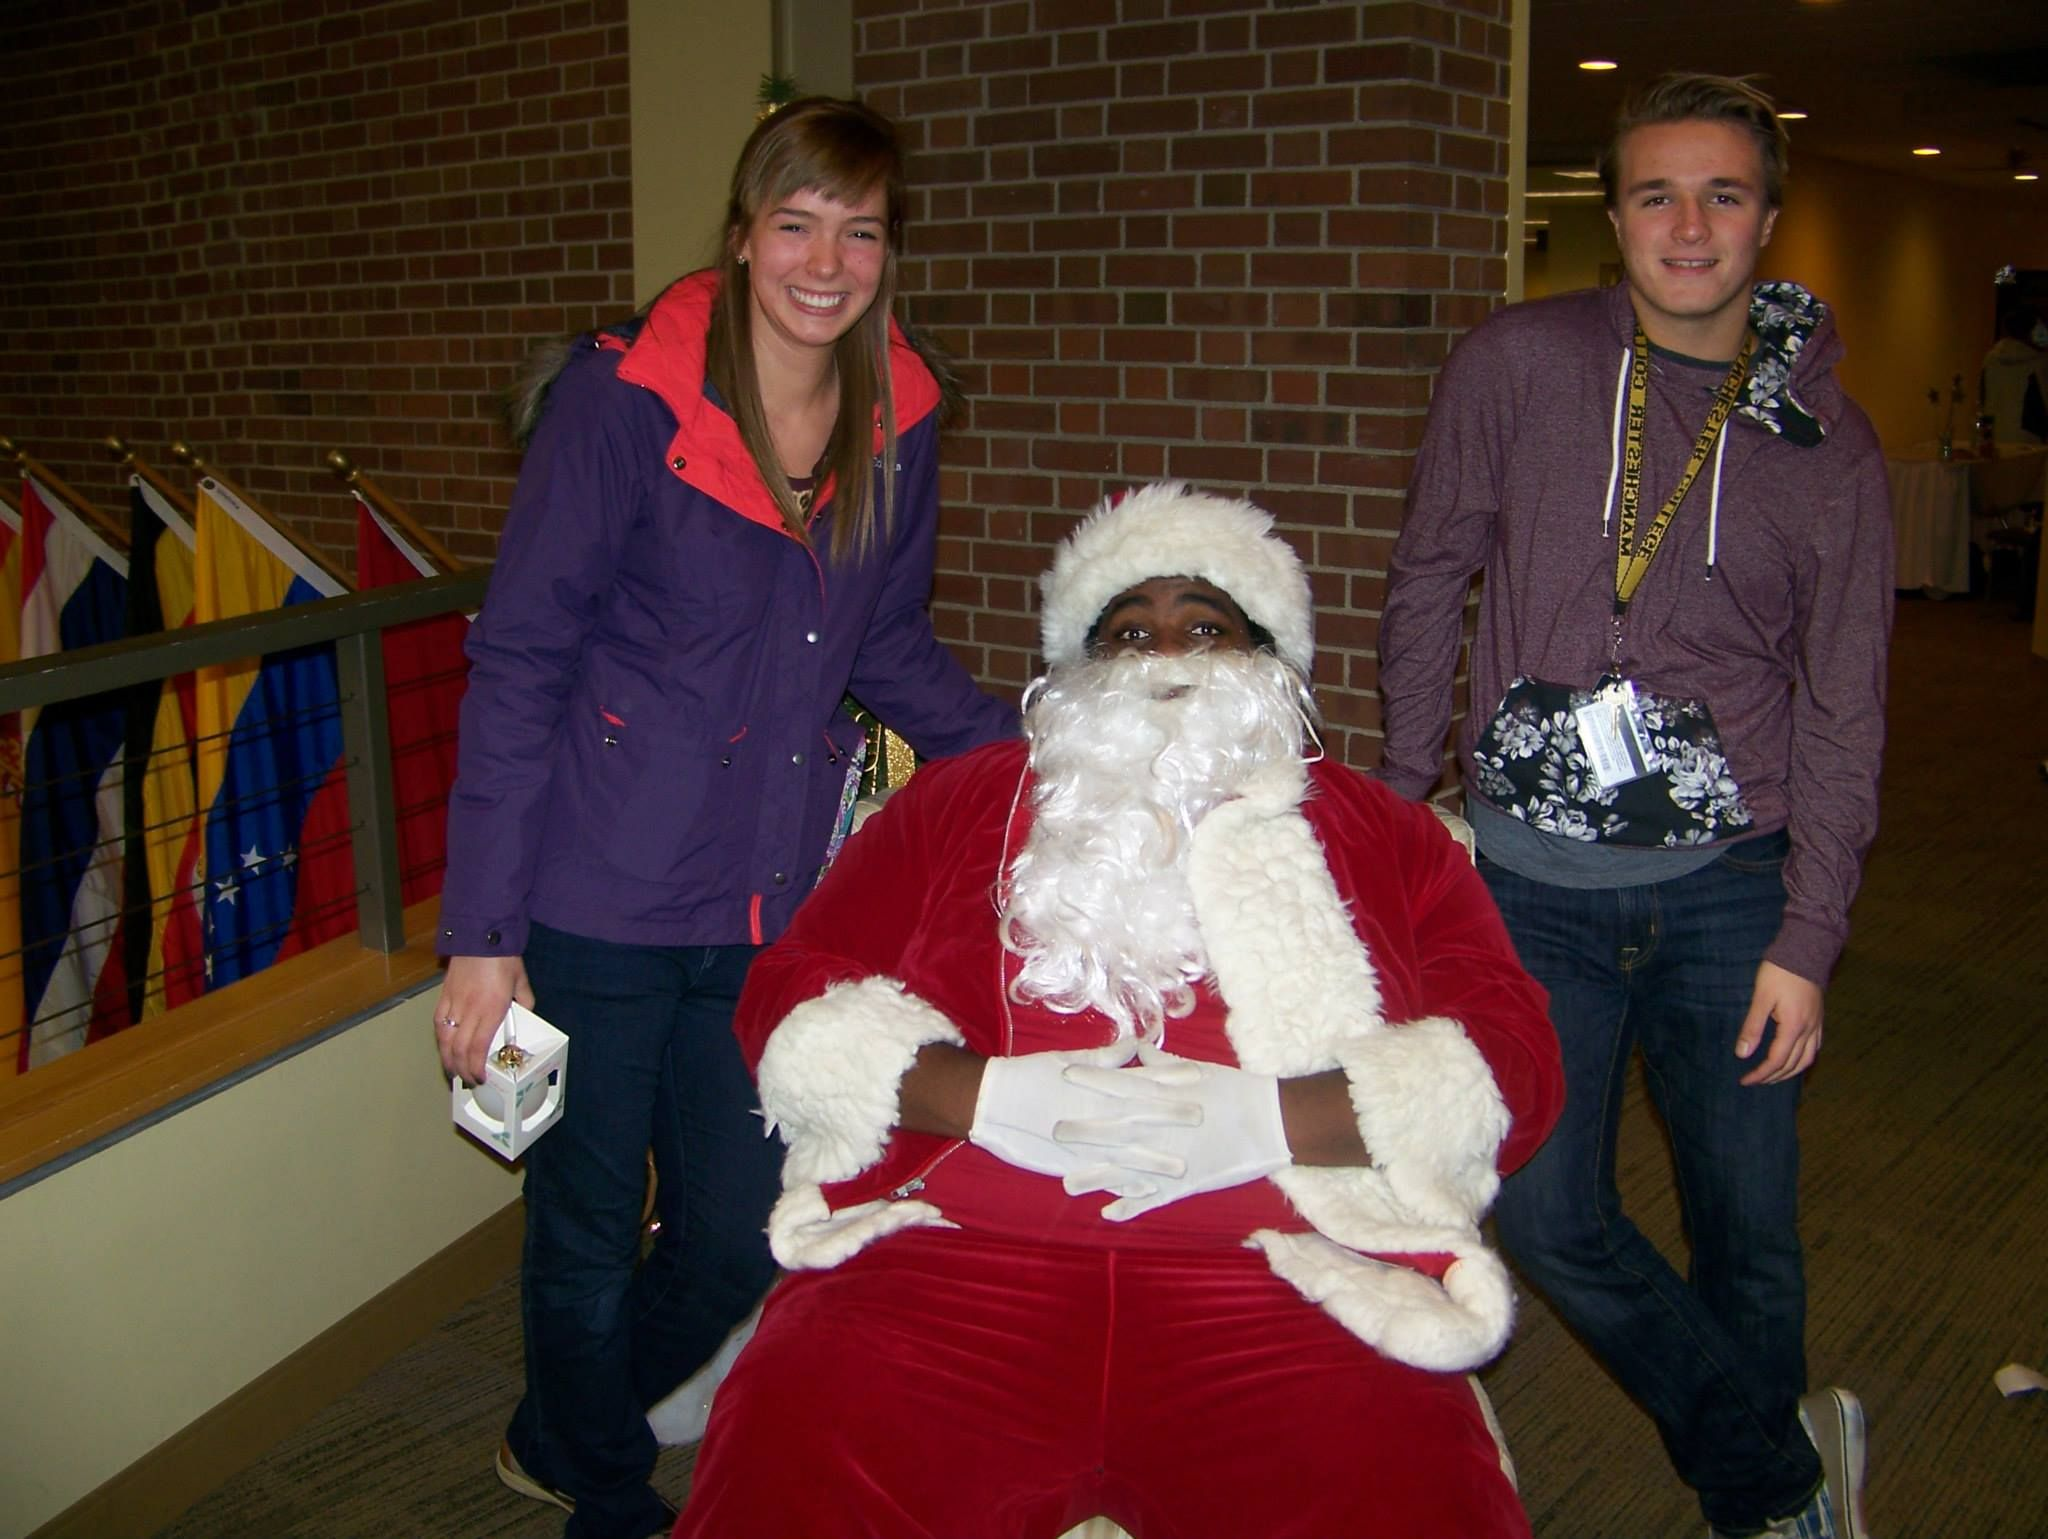 Photos with Santa at Manchester University's Winter